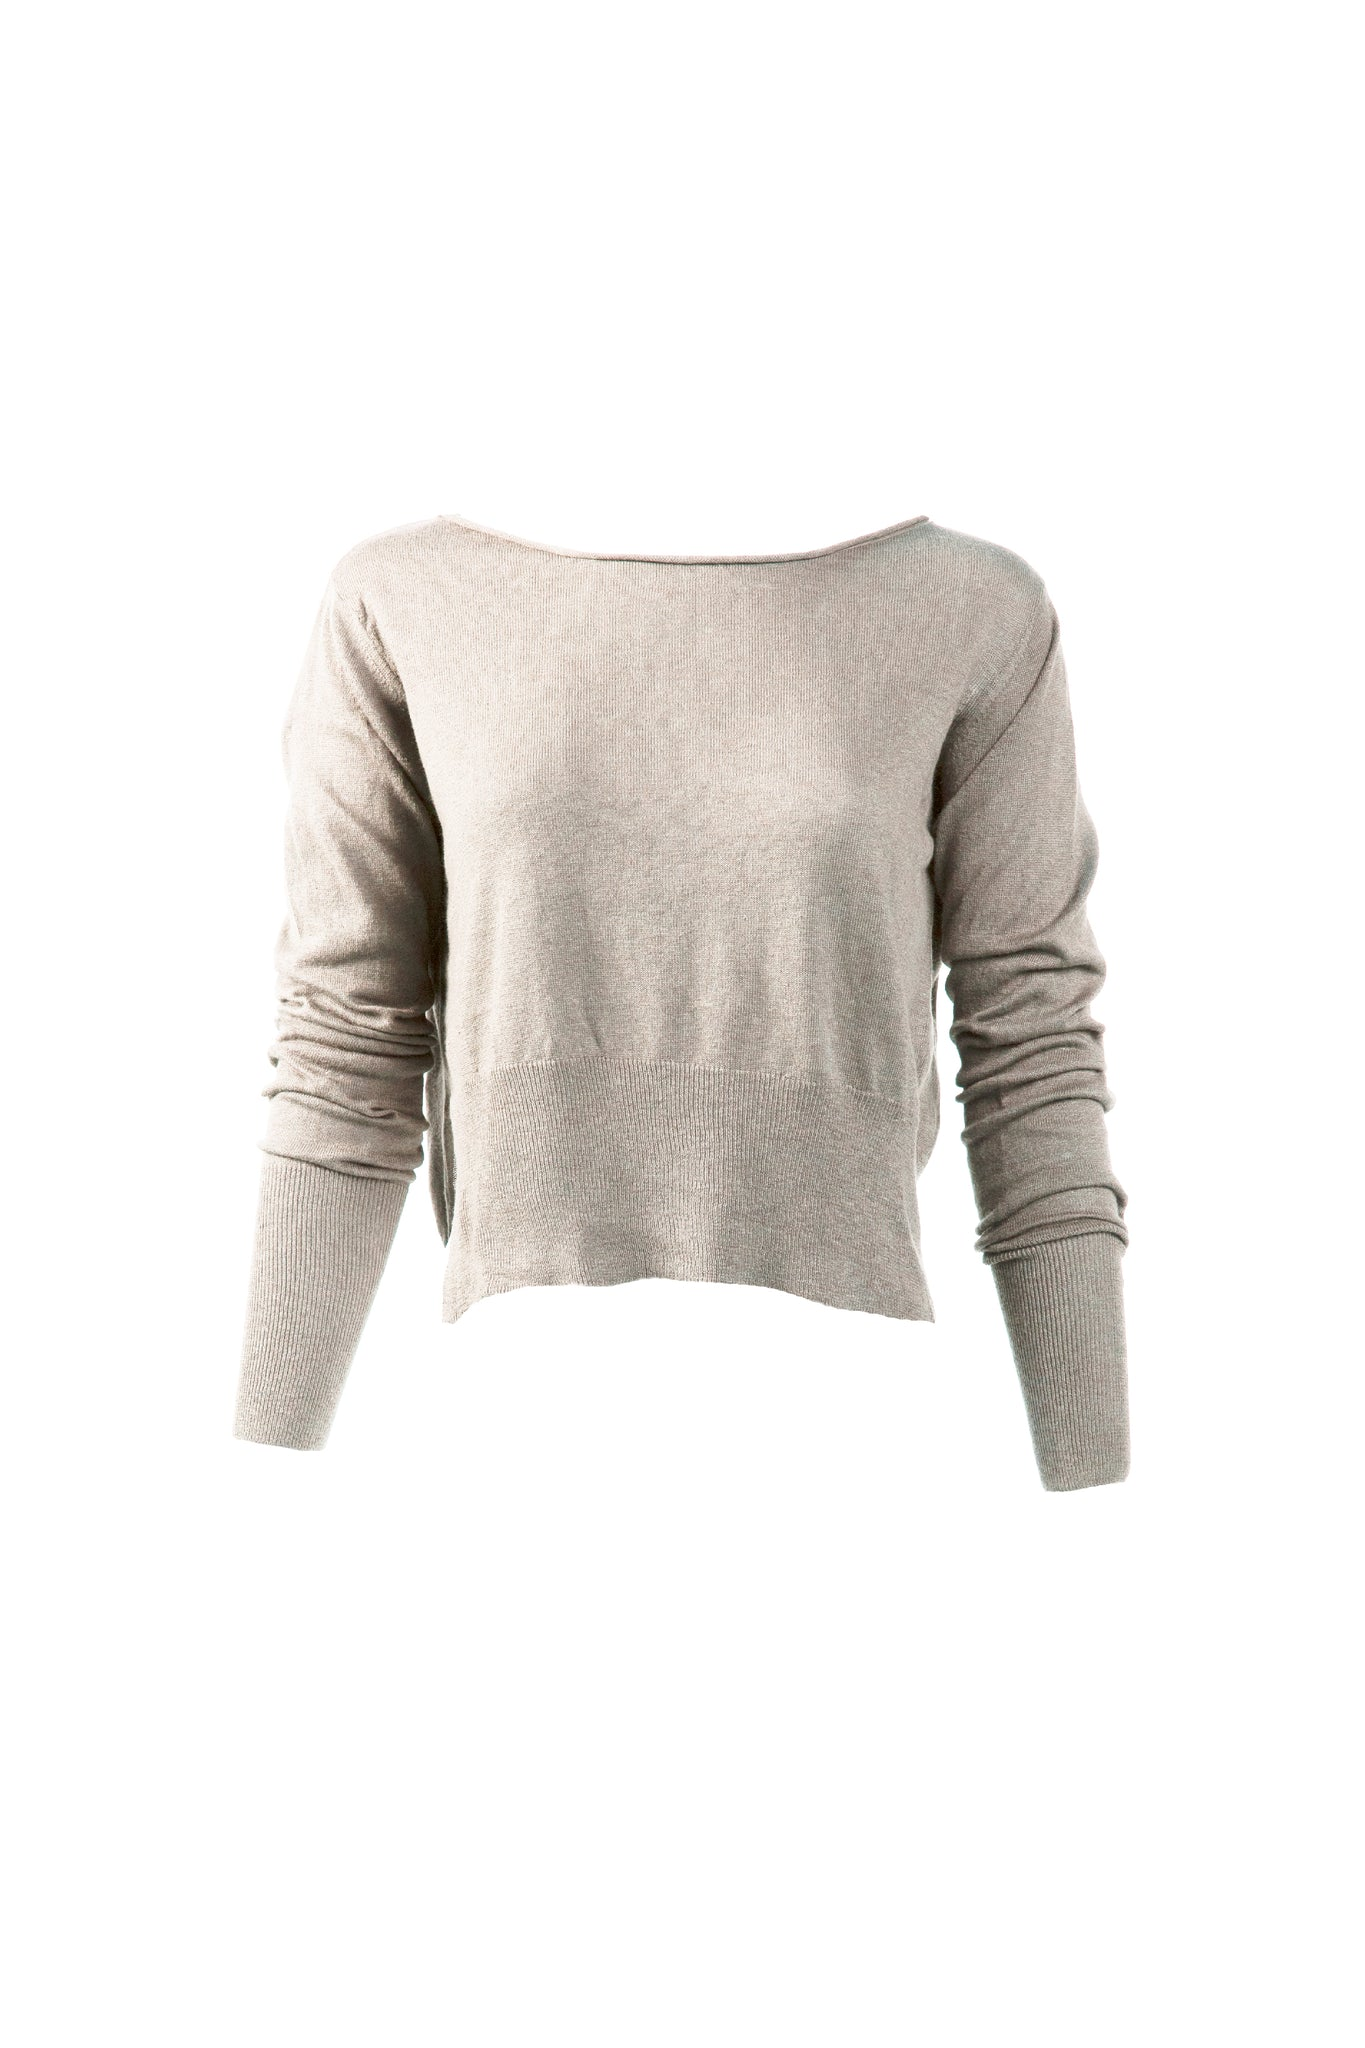 KES Asymmetric Pullover Sweater - Natural